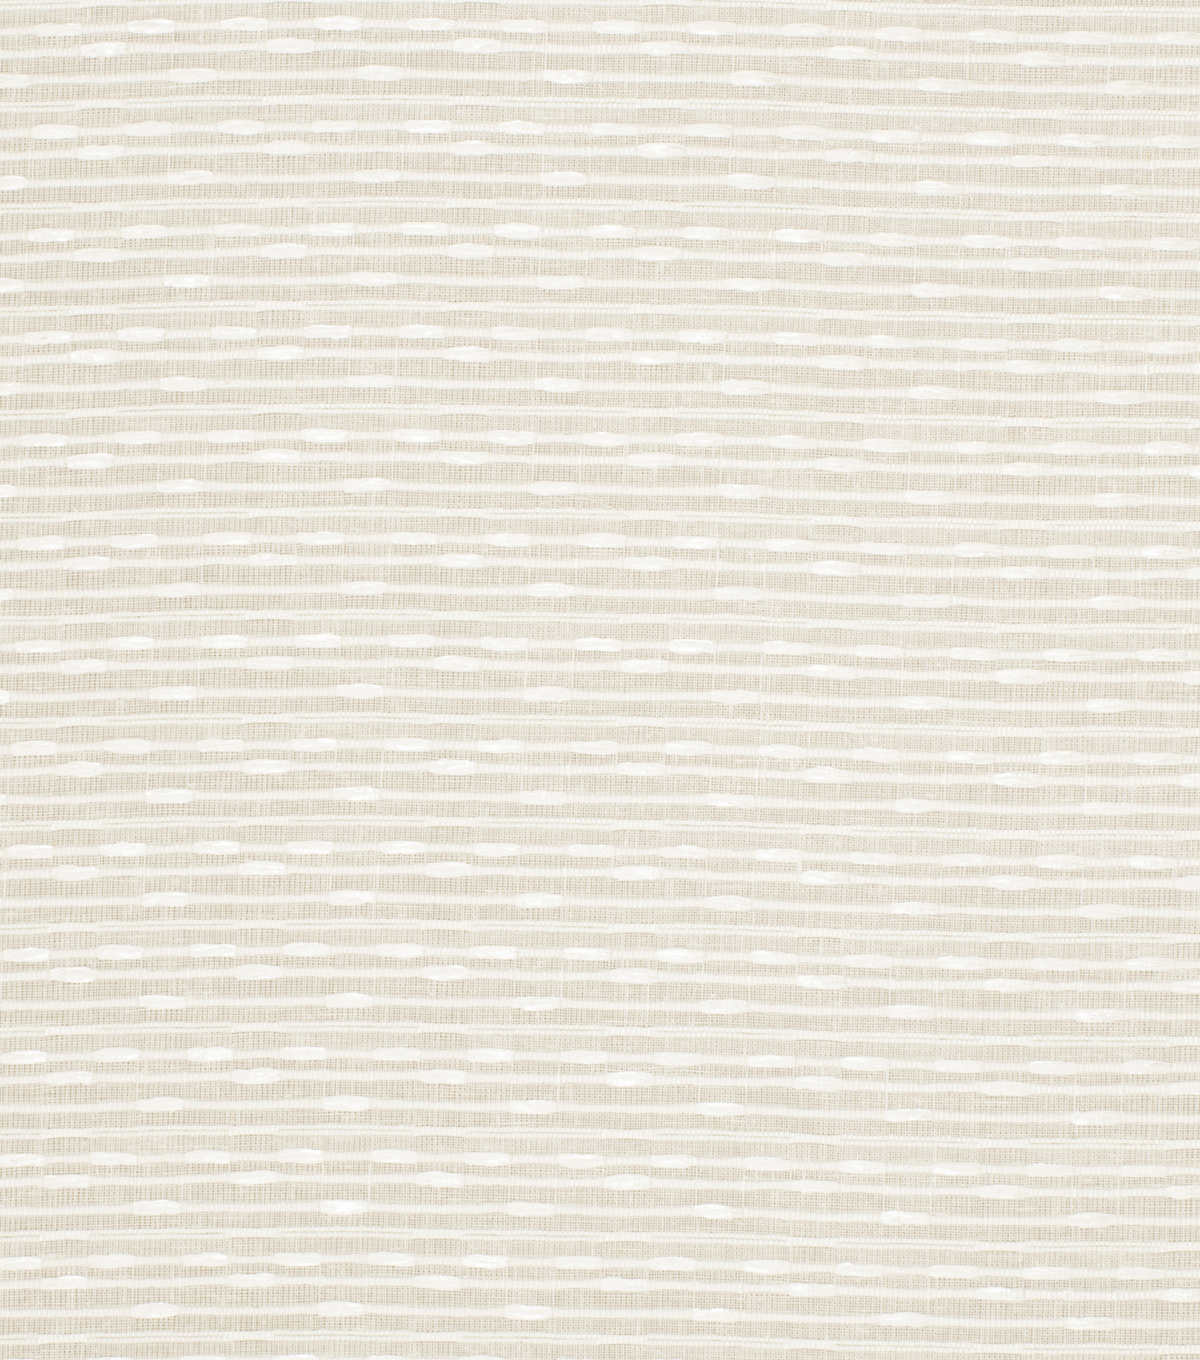 Smc Designs Upholstery Fabric-Bumper/Alabaster